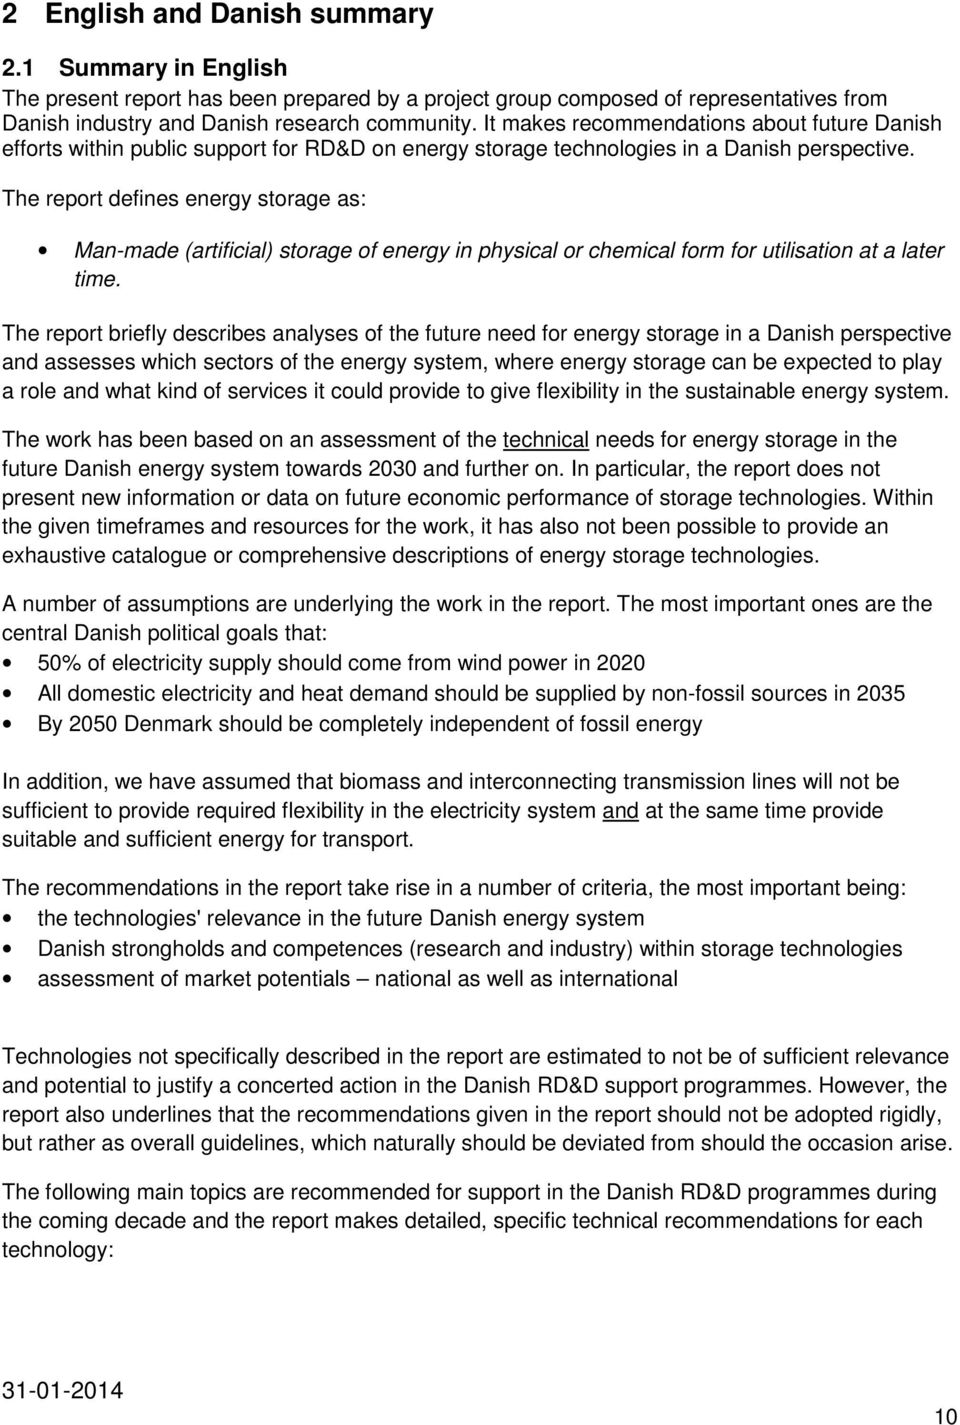 The report defines energy storage as: Man-made (artificial) storage of energy in physical or chemical form for utilisation at a later time.